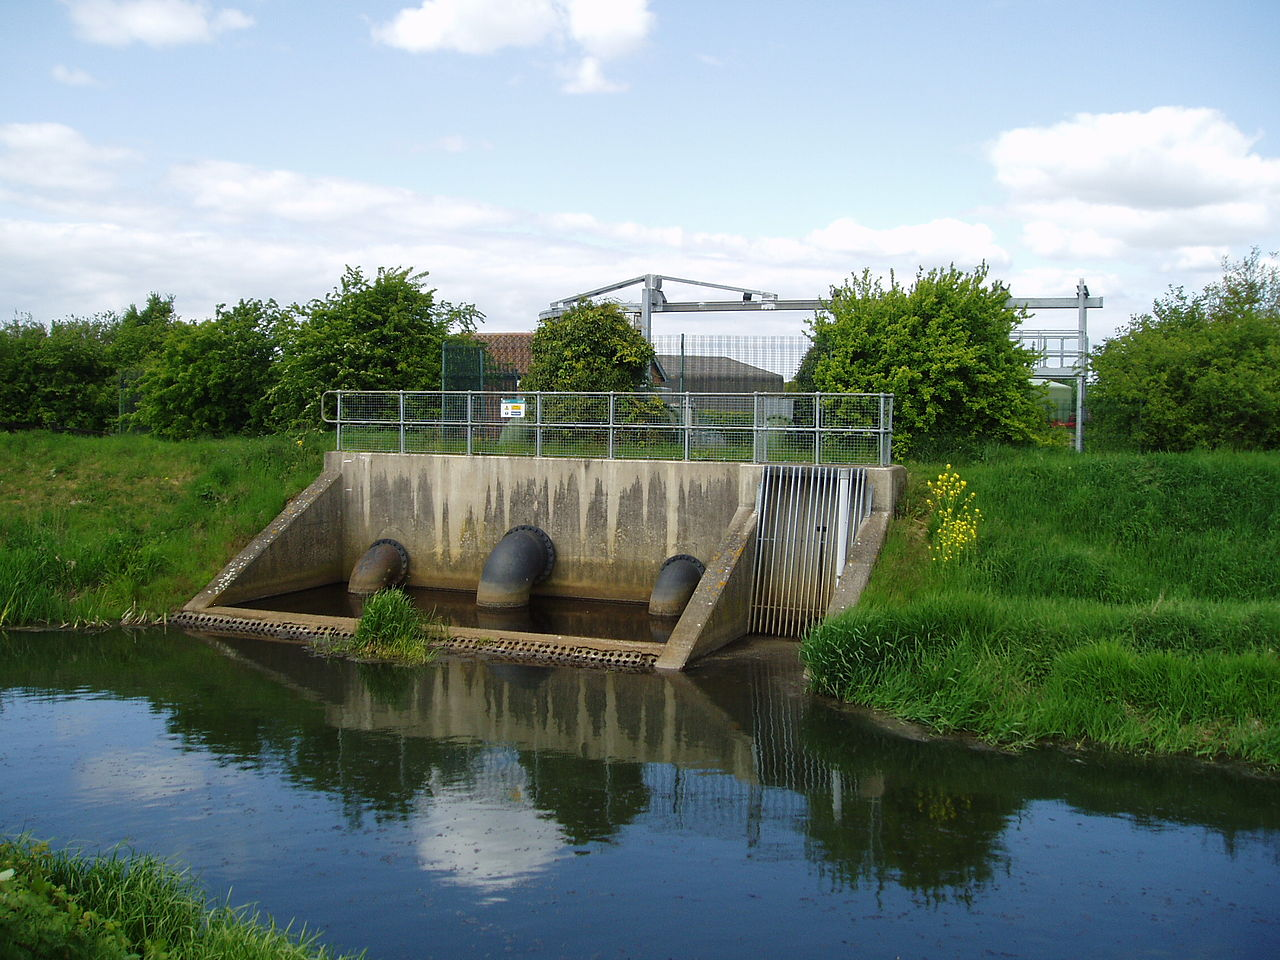 The outlet from Candy Farm North pumping station into the River Torne, South Yorkshire